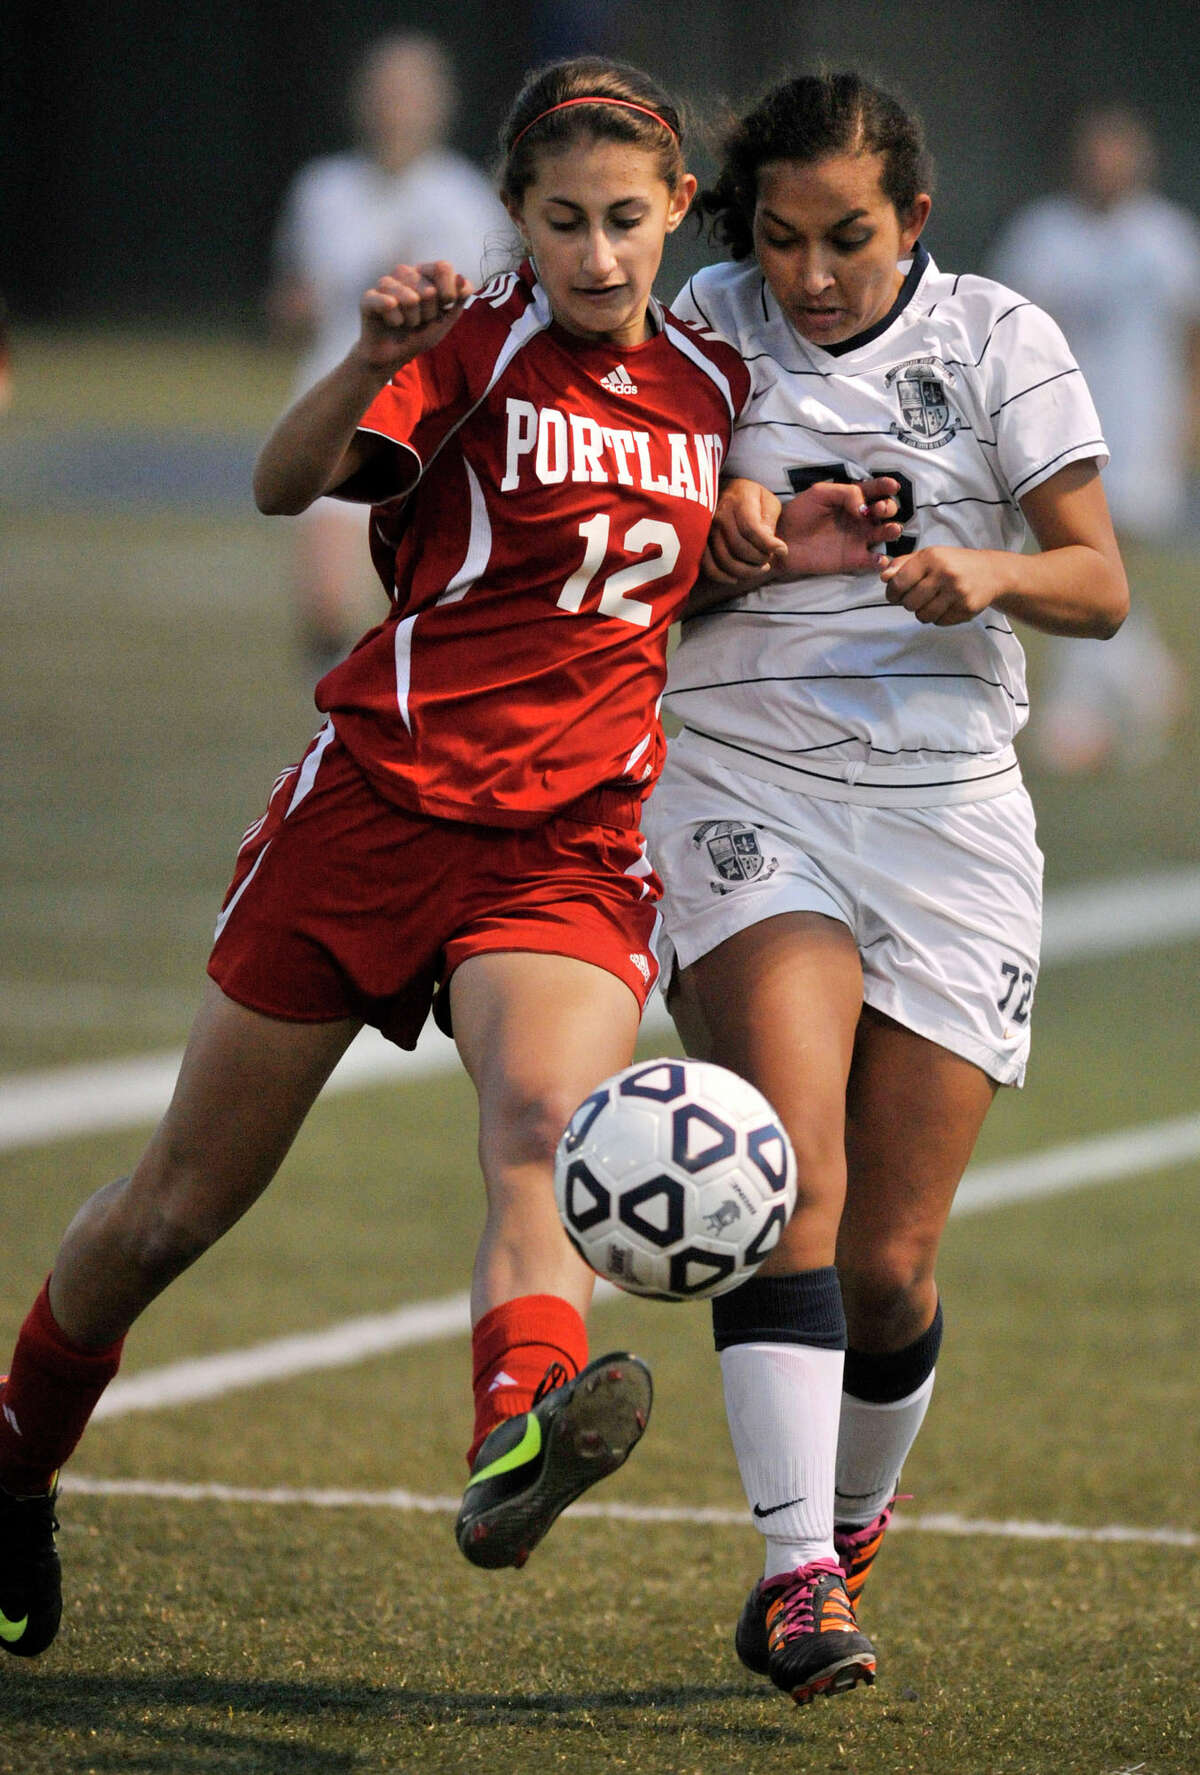 Portland's AnnaRose Zampano and Immaculate's Natalia Diaz compete for the loose ball during their Class S state championship game at Municipal Stadium in Waterbury on Friday, Nov. 23, 2012. Immaculate won, 5-0.